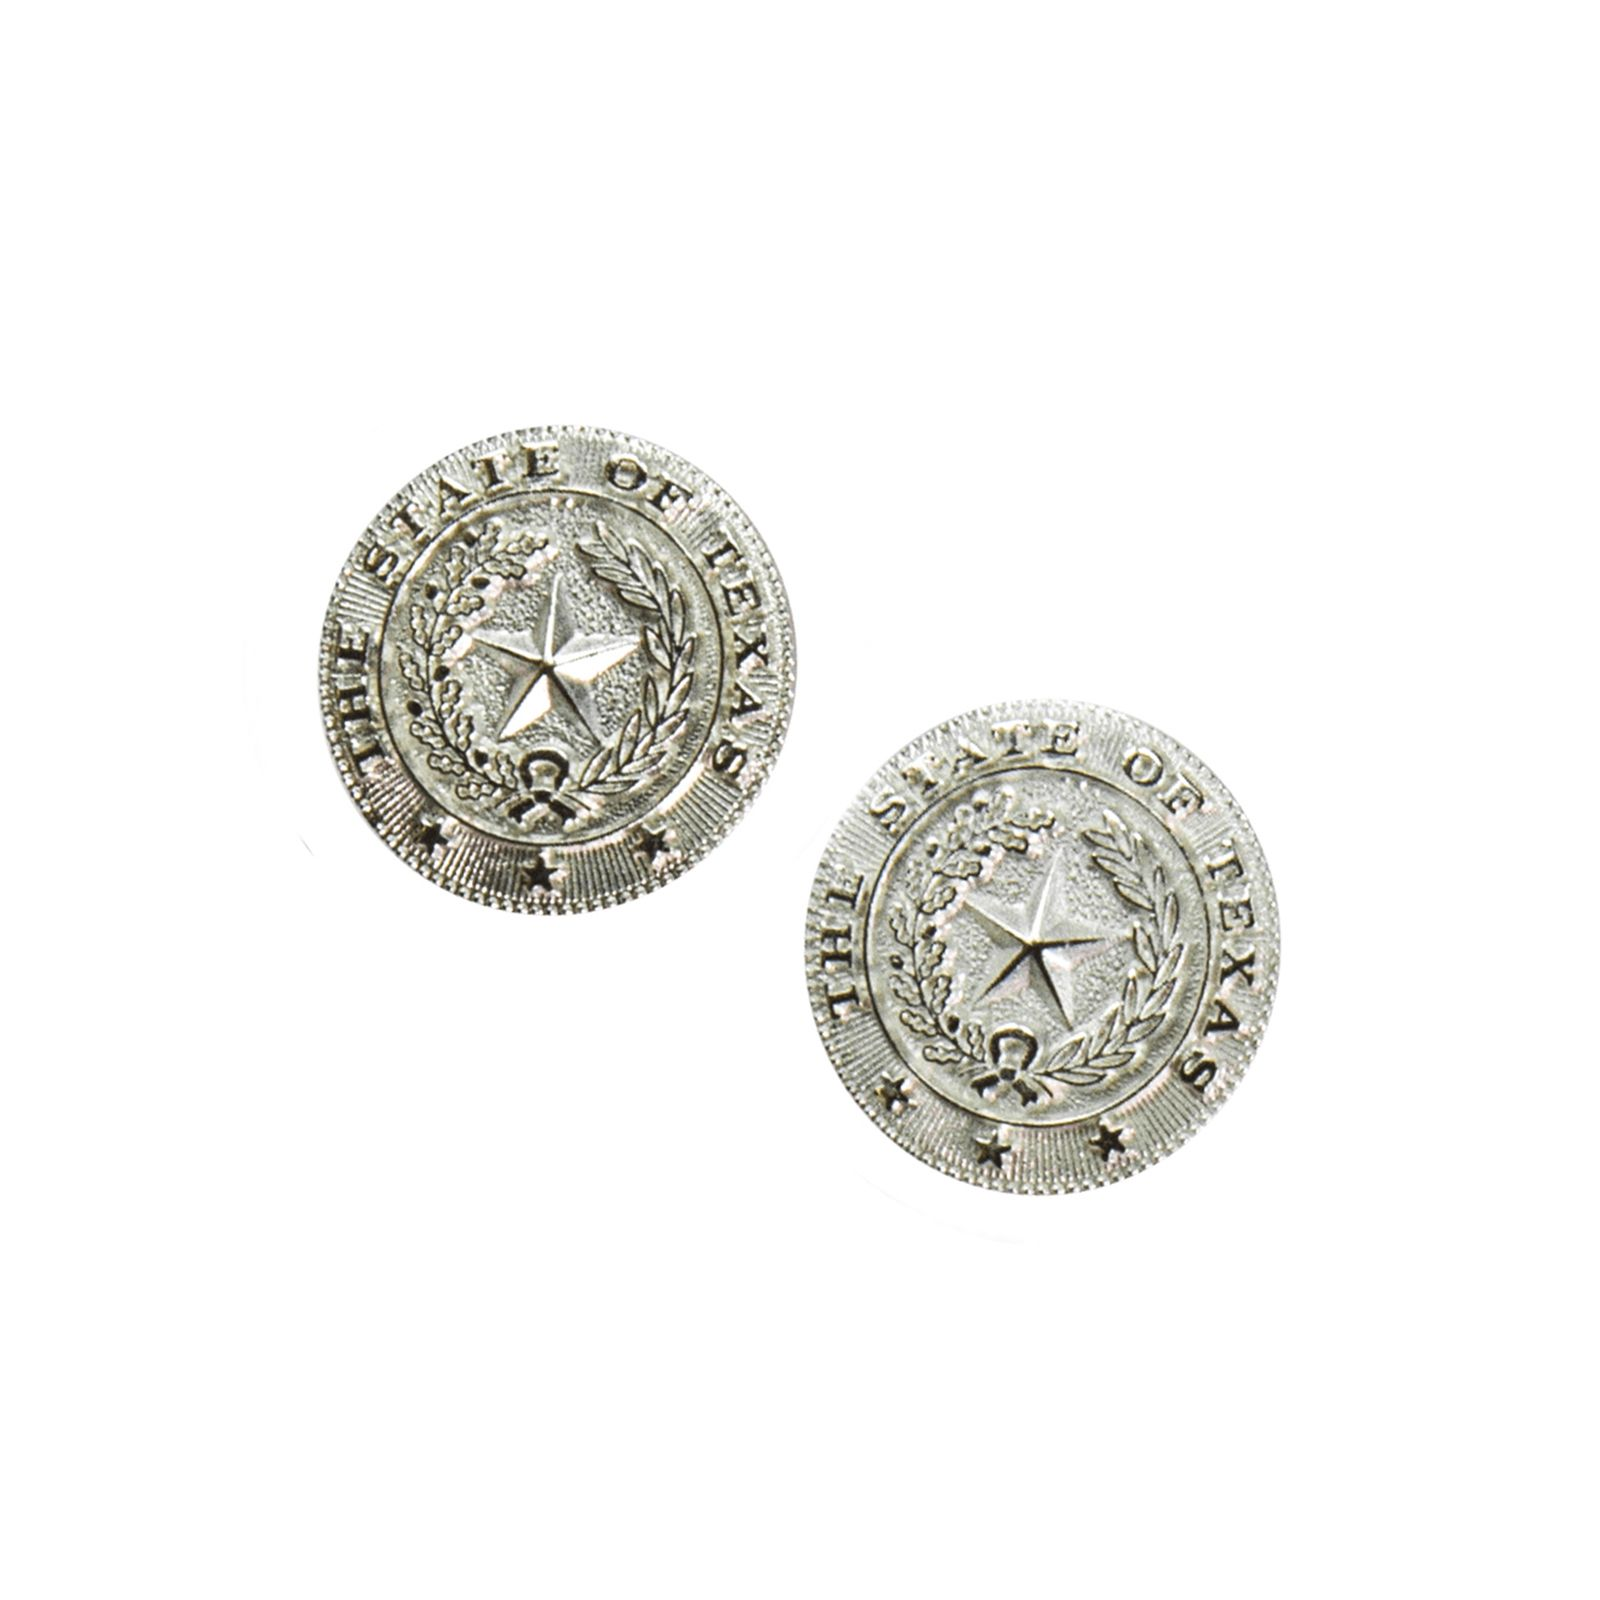 Silver Plate State Seal Earrings